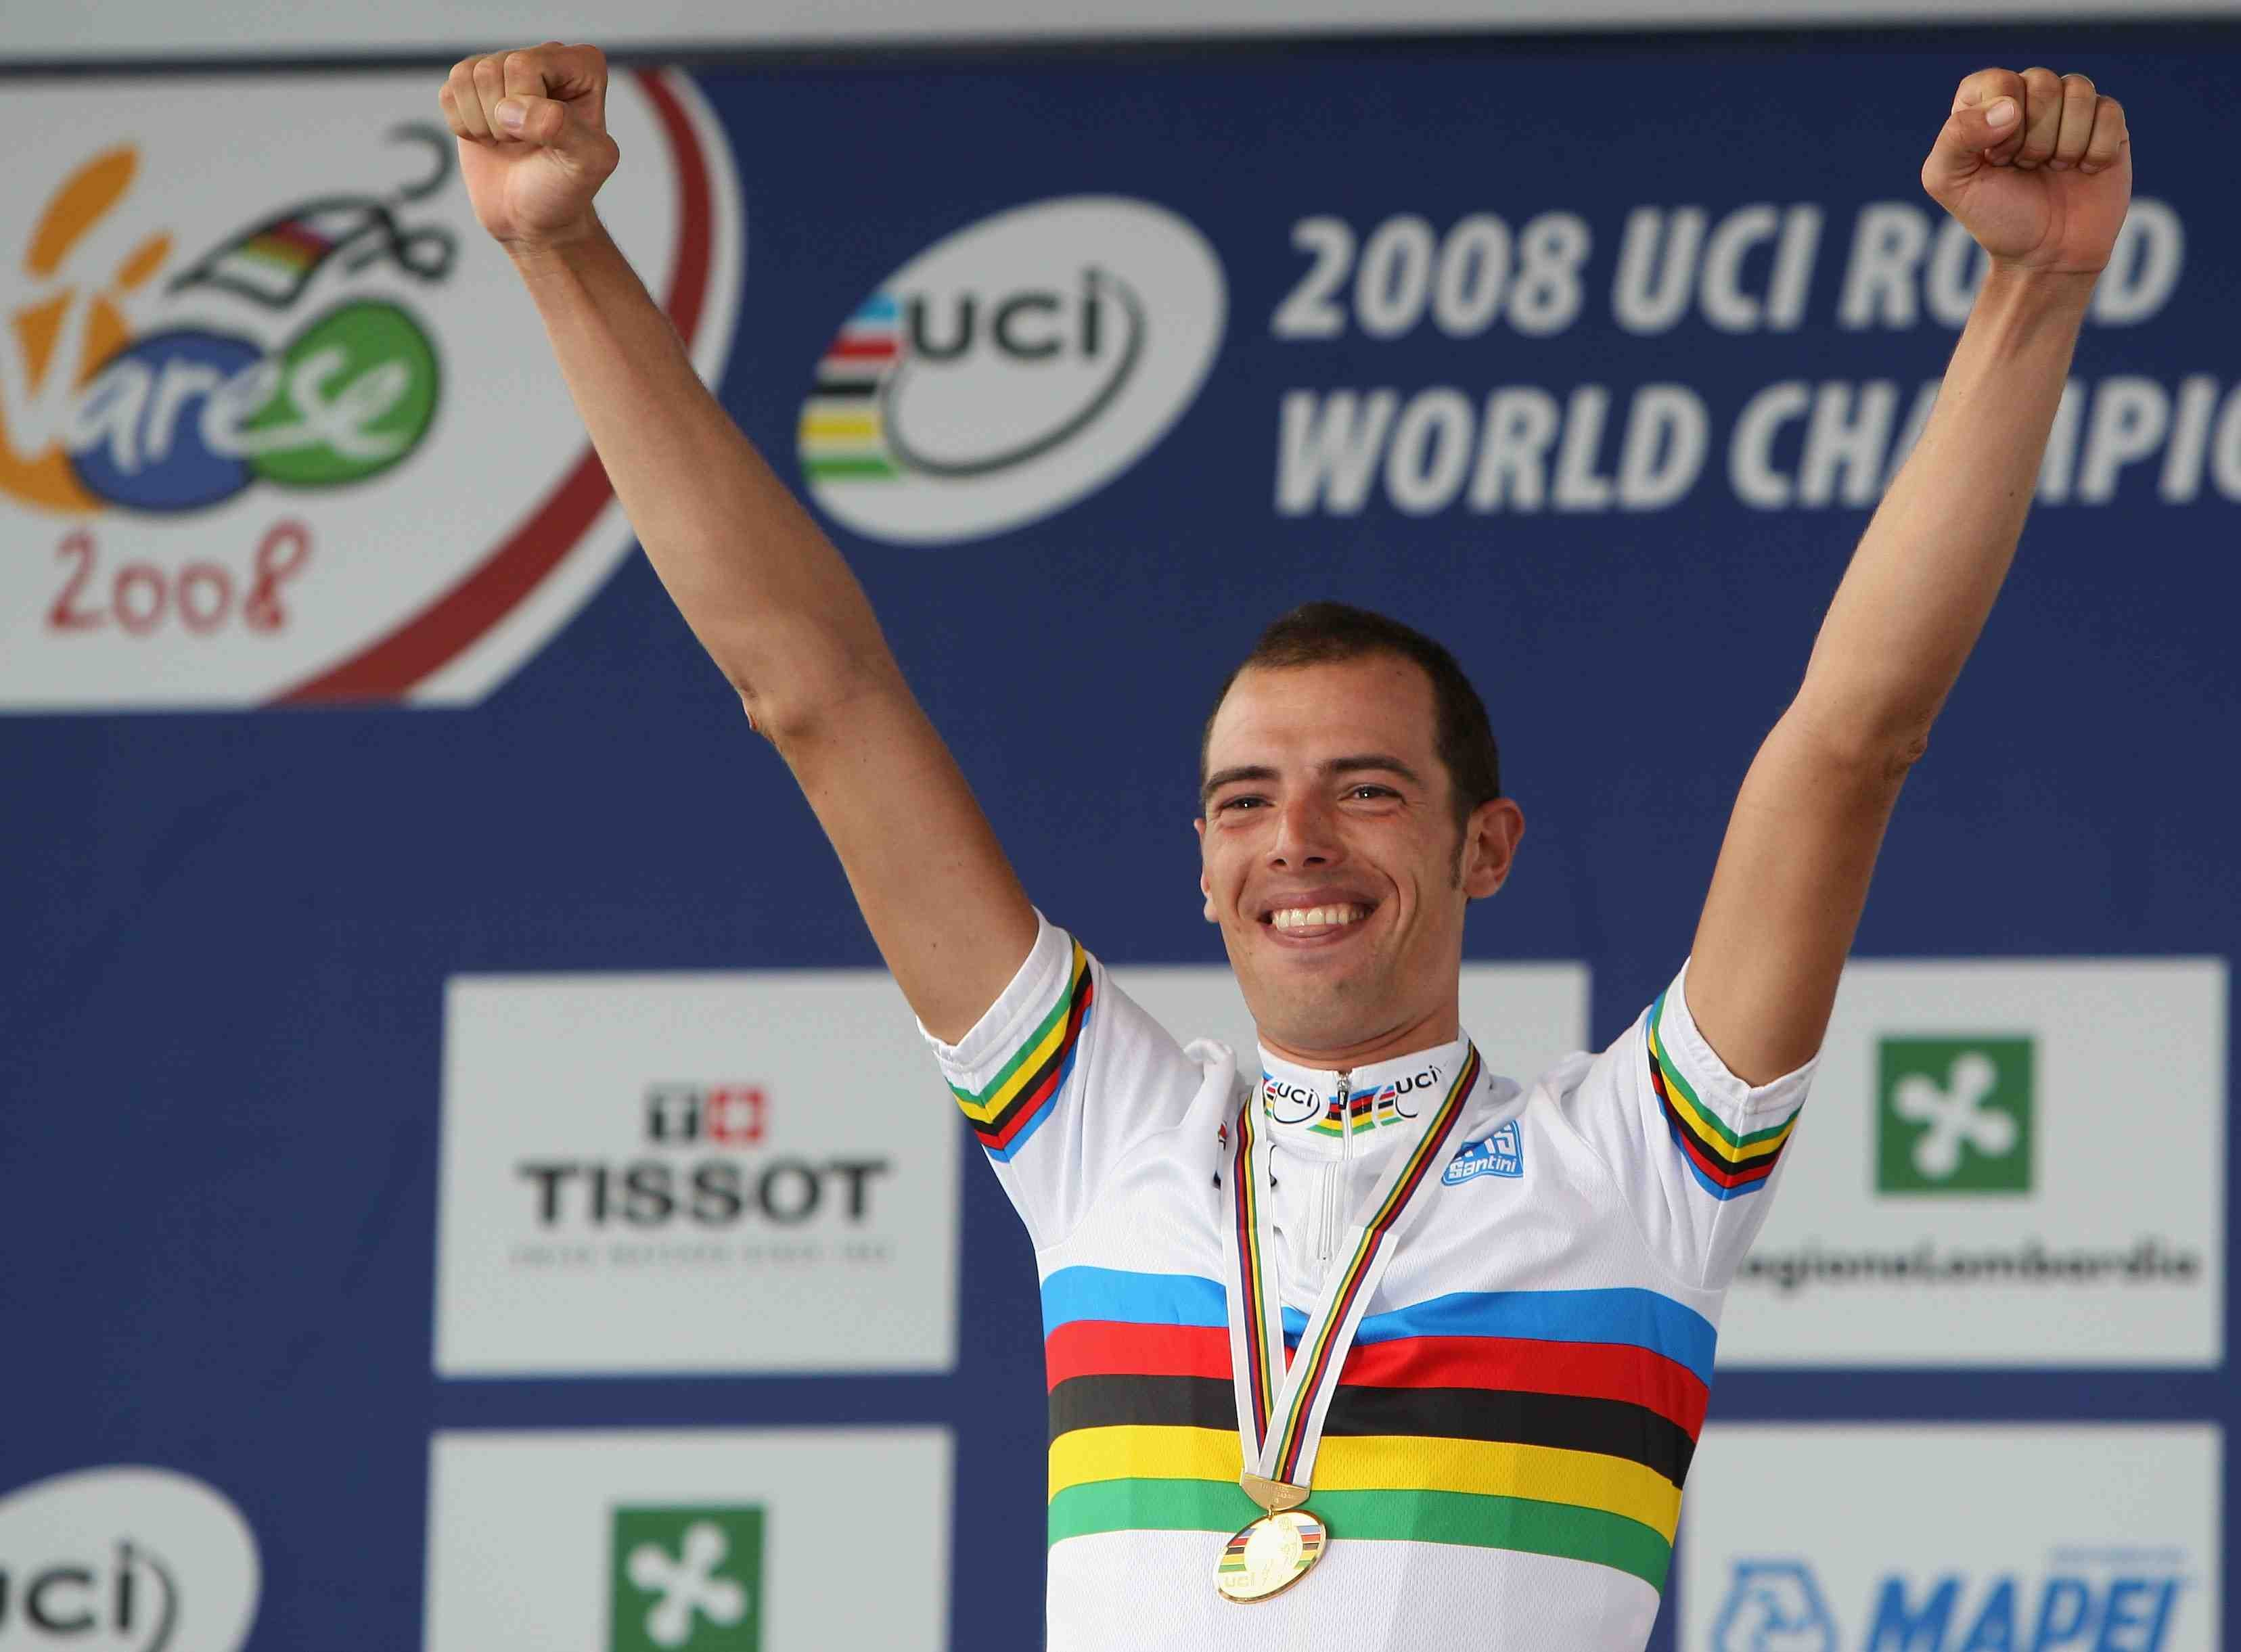 Alessandro Ballan of Italy celebrates winning the Elite Men's Road Race during the 2008 UCI Road World Championships on September 28, 2008 in Varese, Italy.